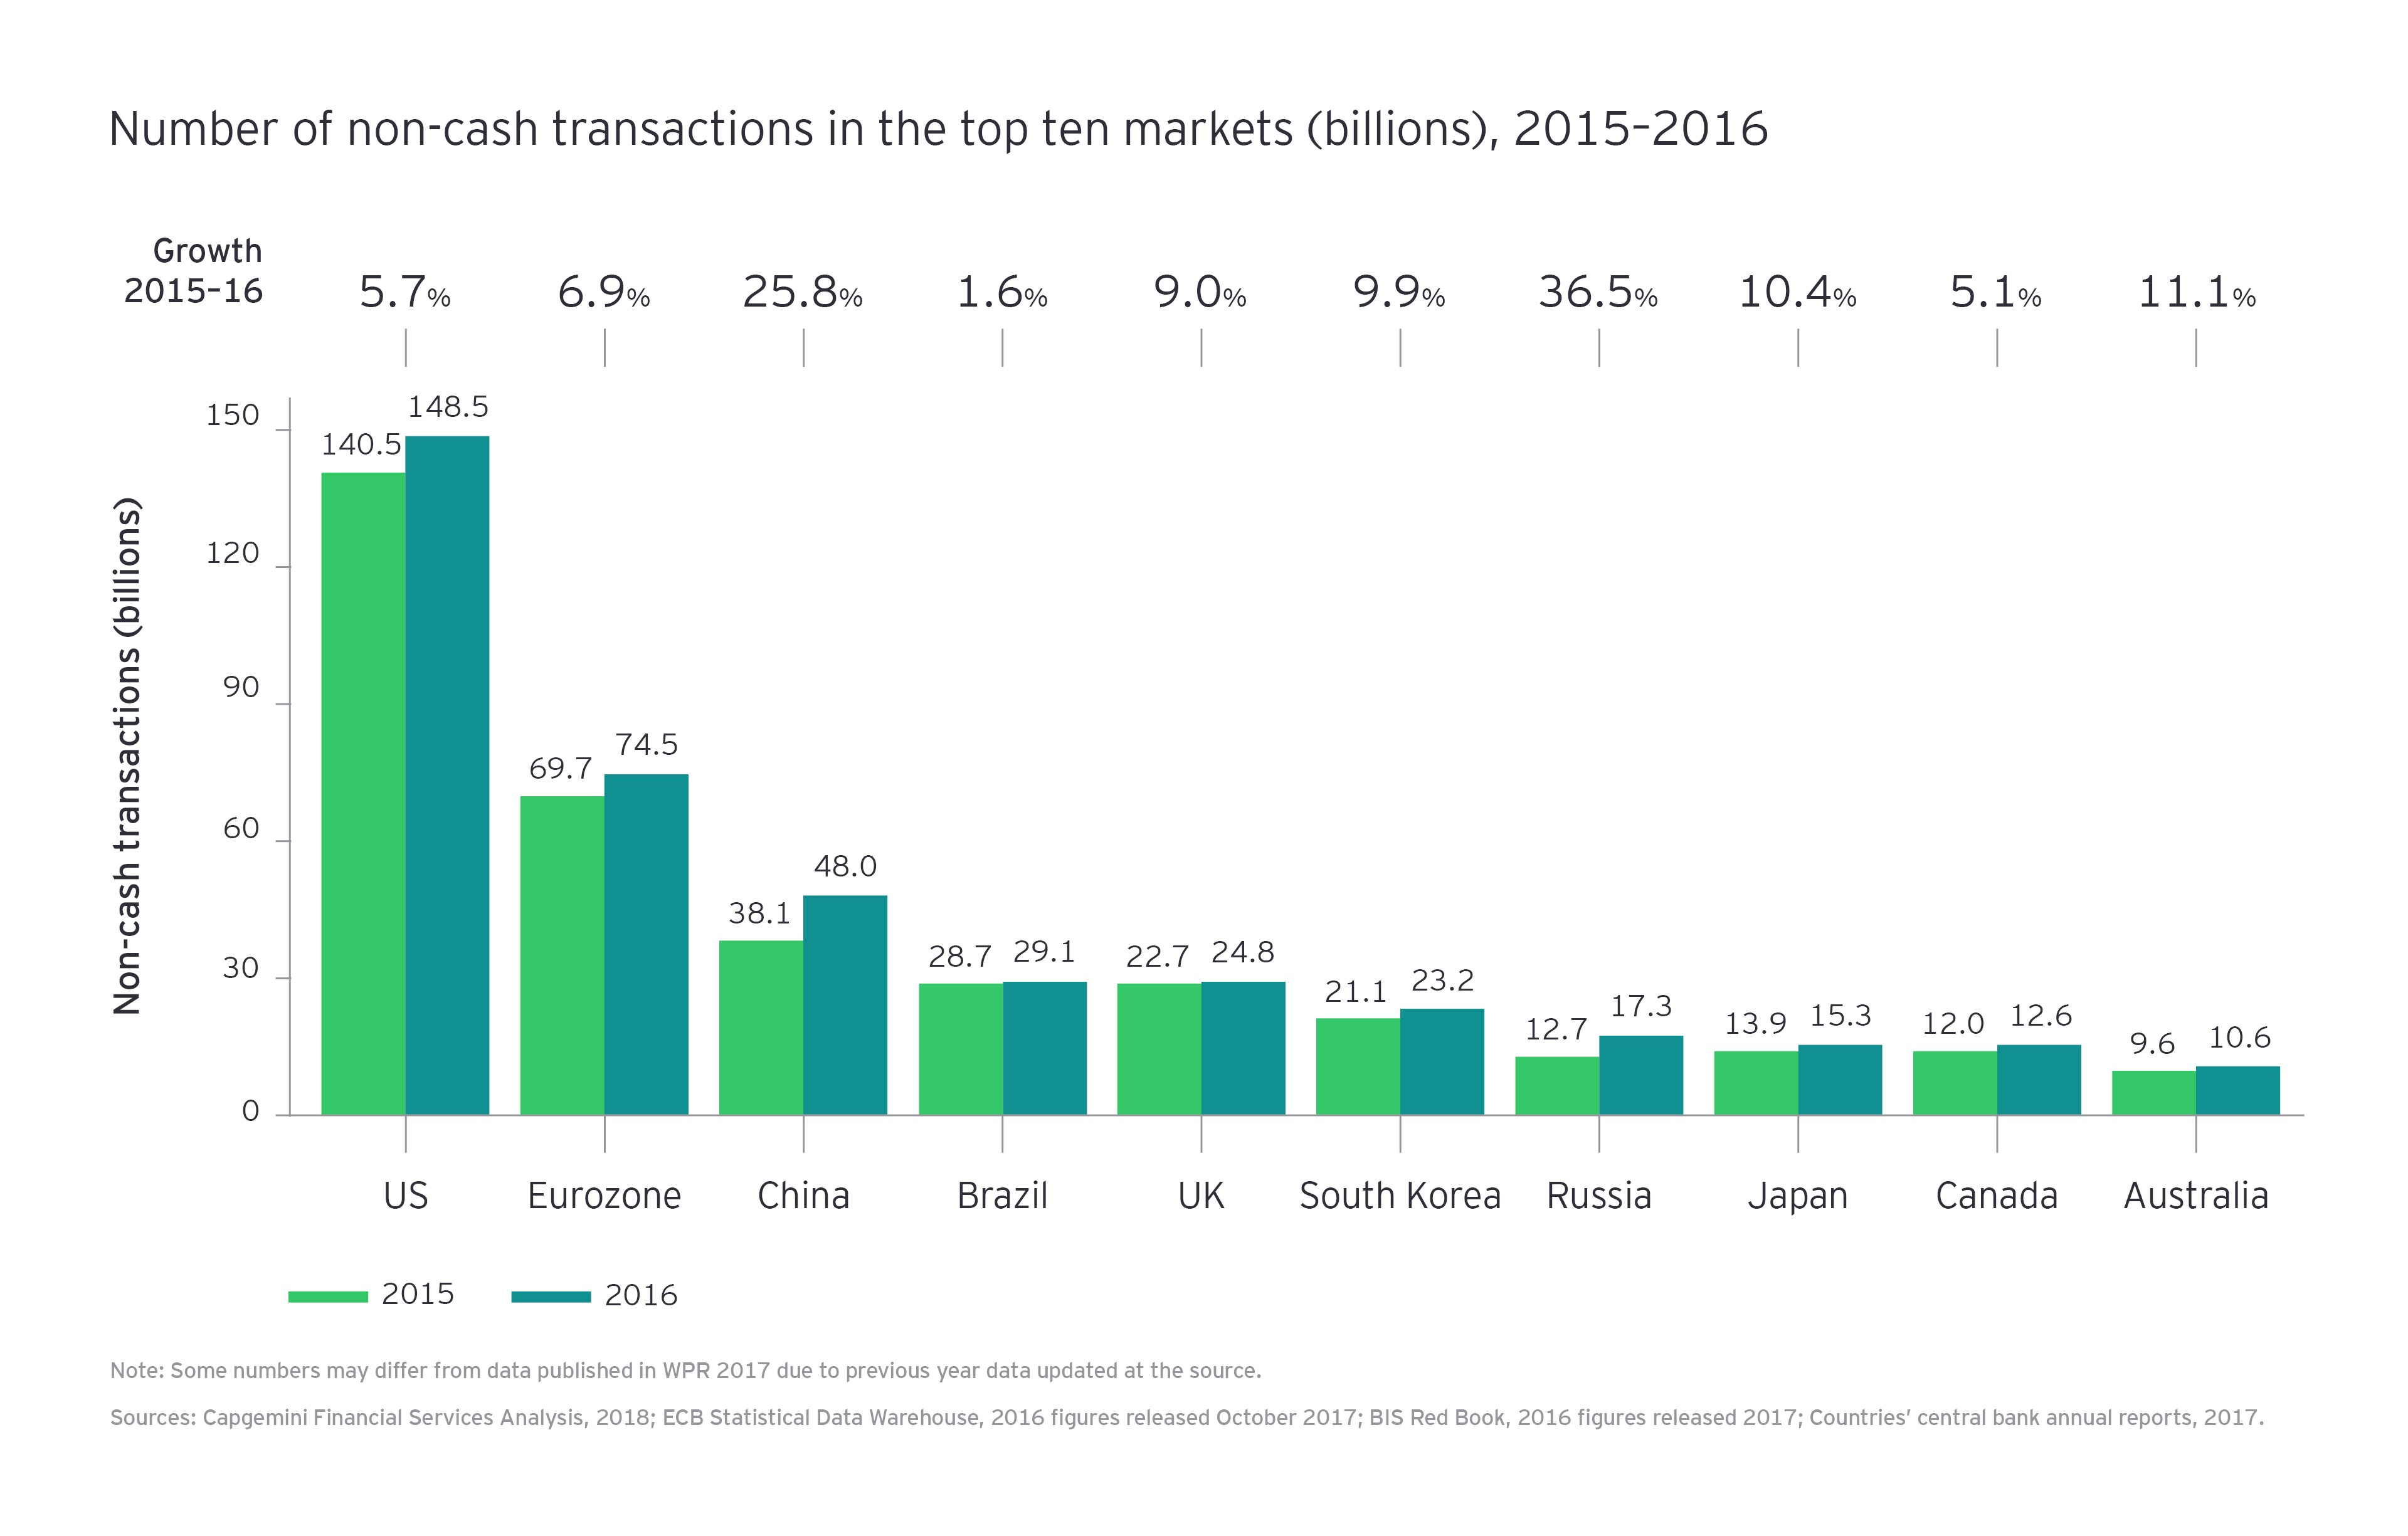 Number of non cash transactions graph